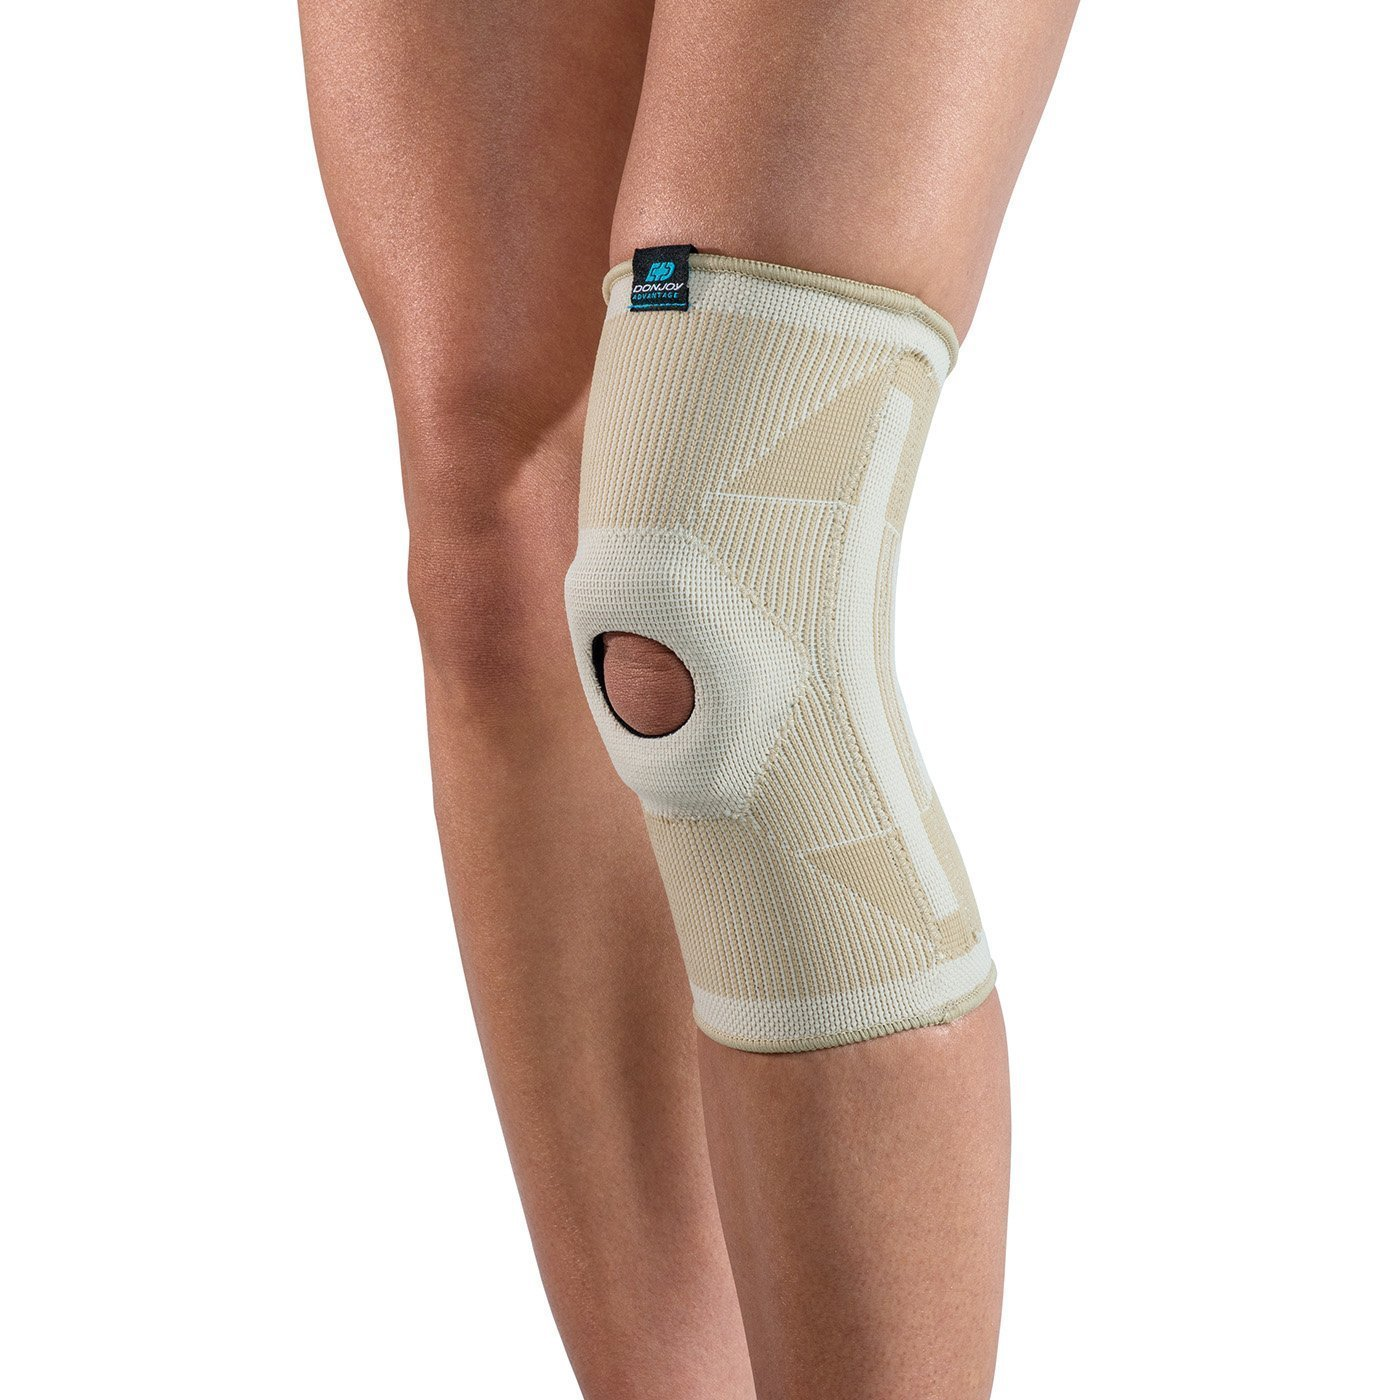 c2f7aaf7f0 Get Quotations · DonJoy Advantage DA161KS02-TAN-L Deluxe Elastic Knee for  Sprains, Strains, Swelling